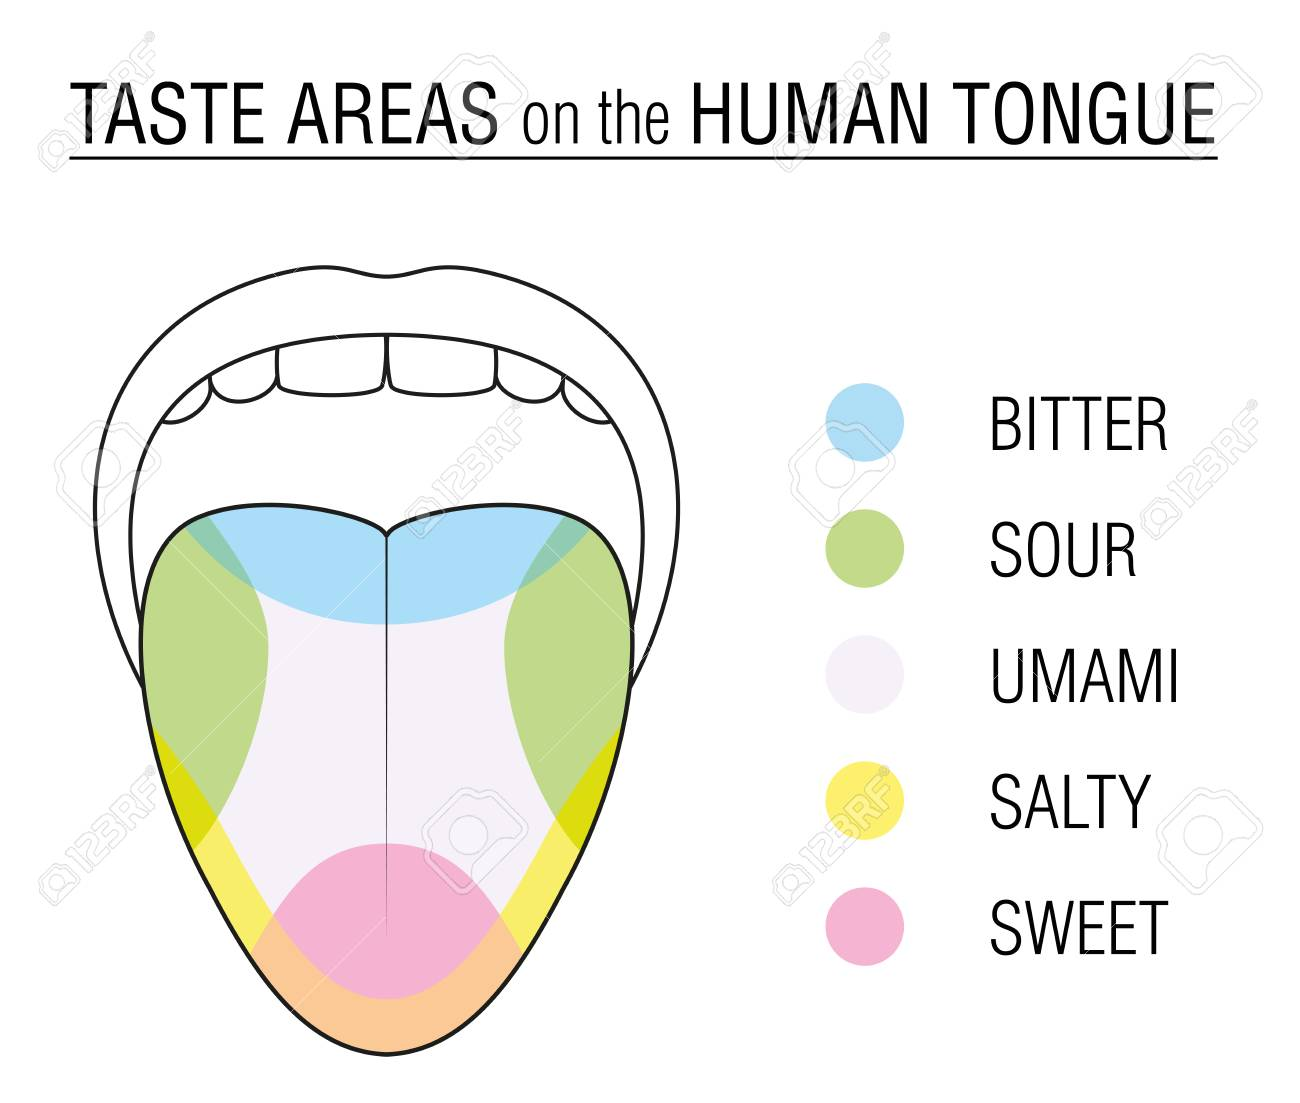 taste areas of the human tongue - colored division with zones of taste buds  for bitter